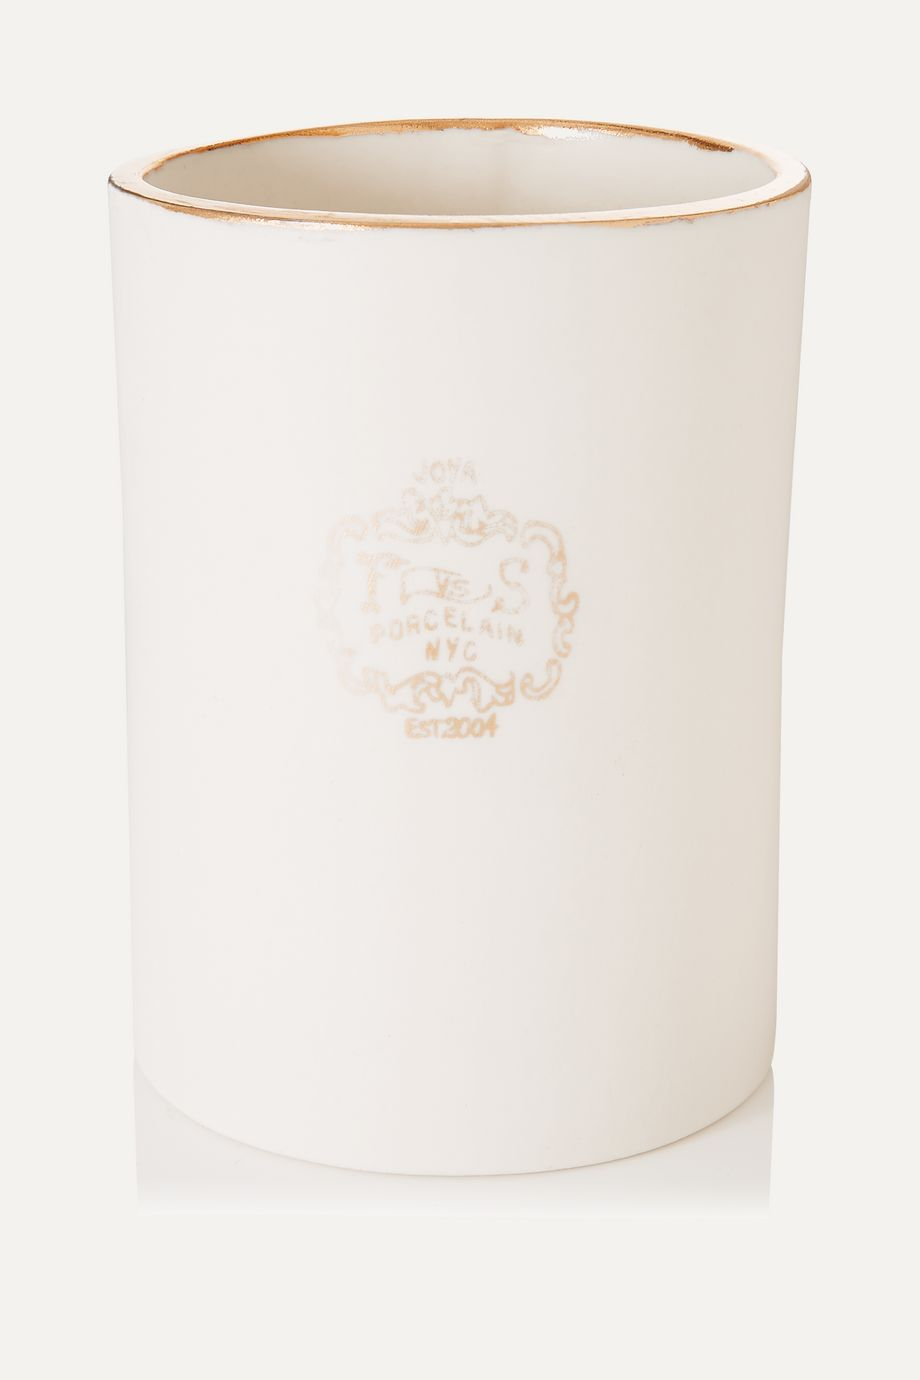 Joya Composition No.1 scented candle, 260g